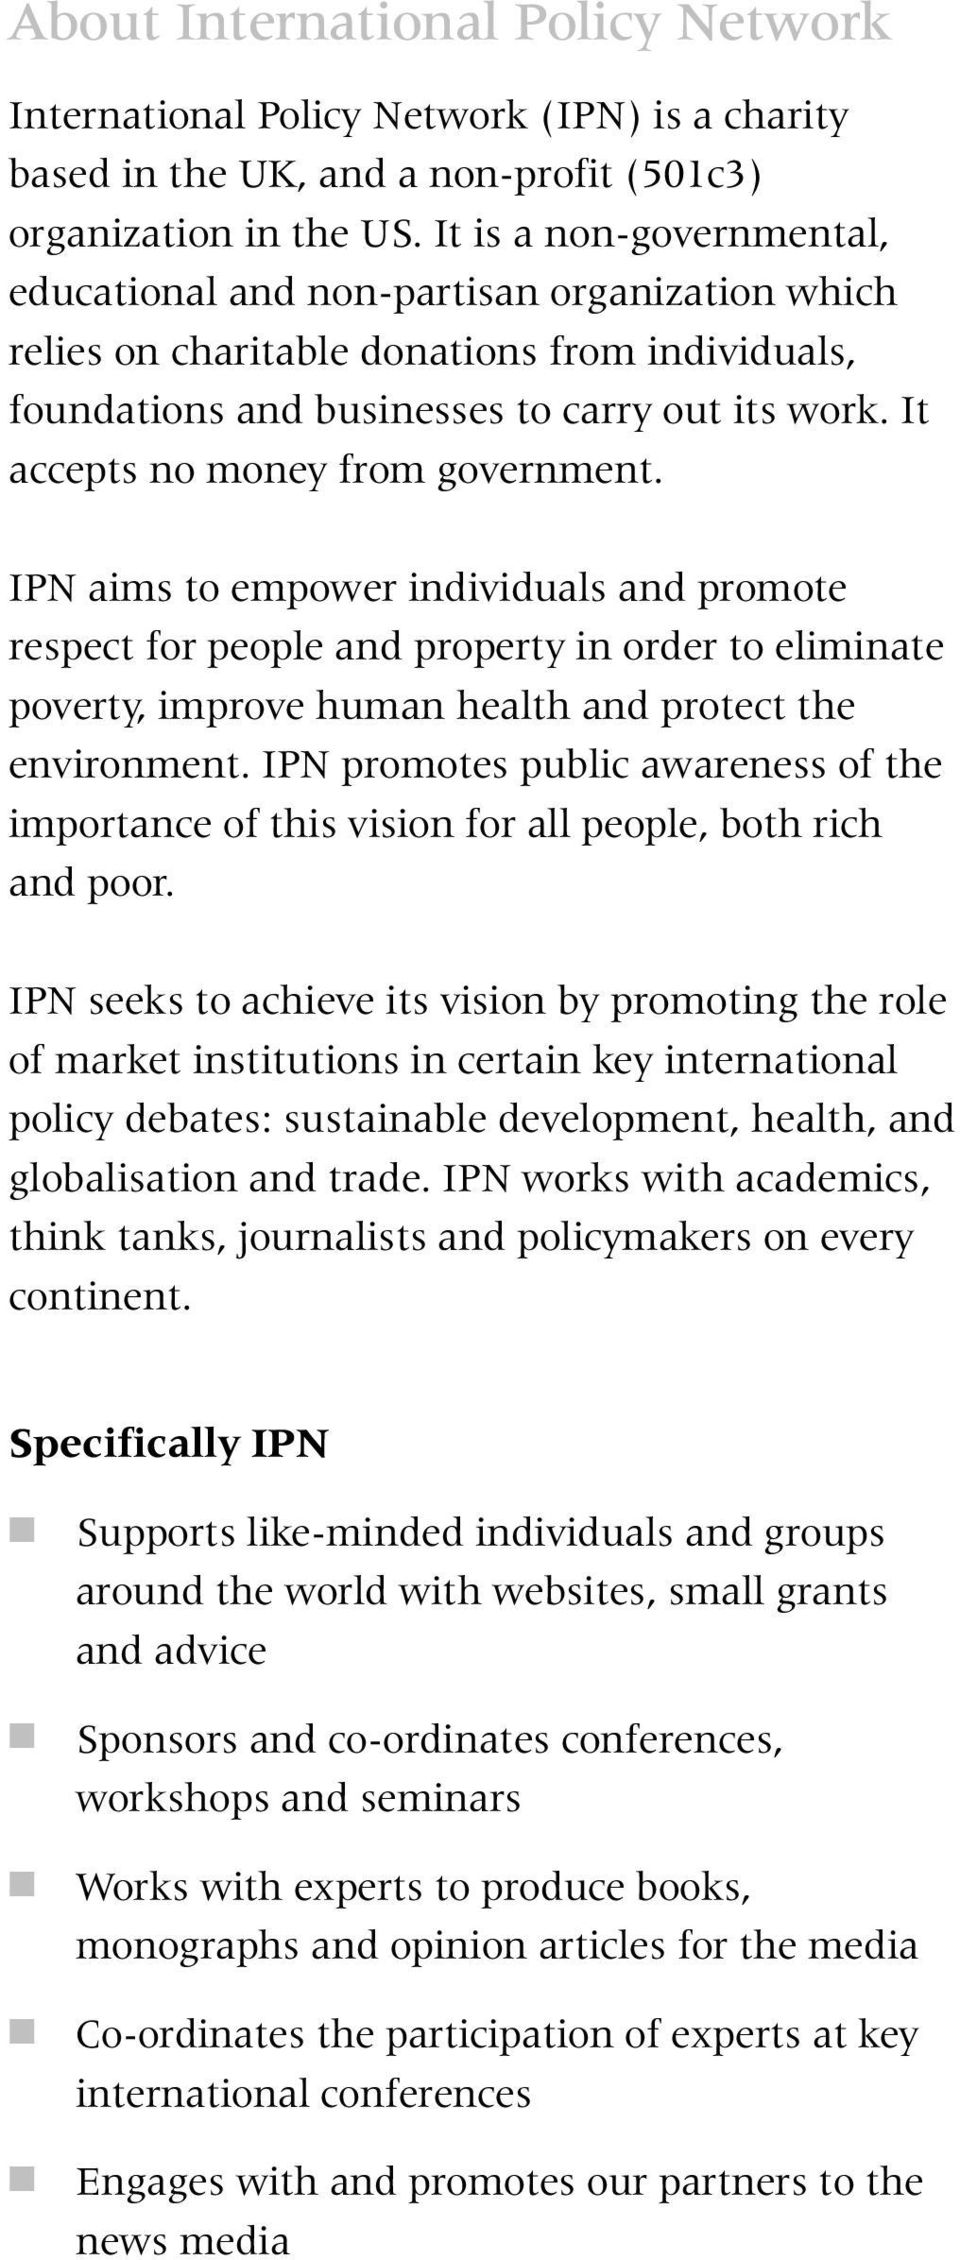 It accepts no money from government. IPN aims to empower individuals and promote respect for people and property in order to eliminate poverty, improve human health and protect the environment.